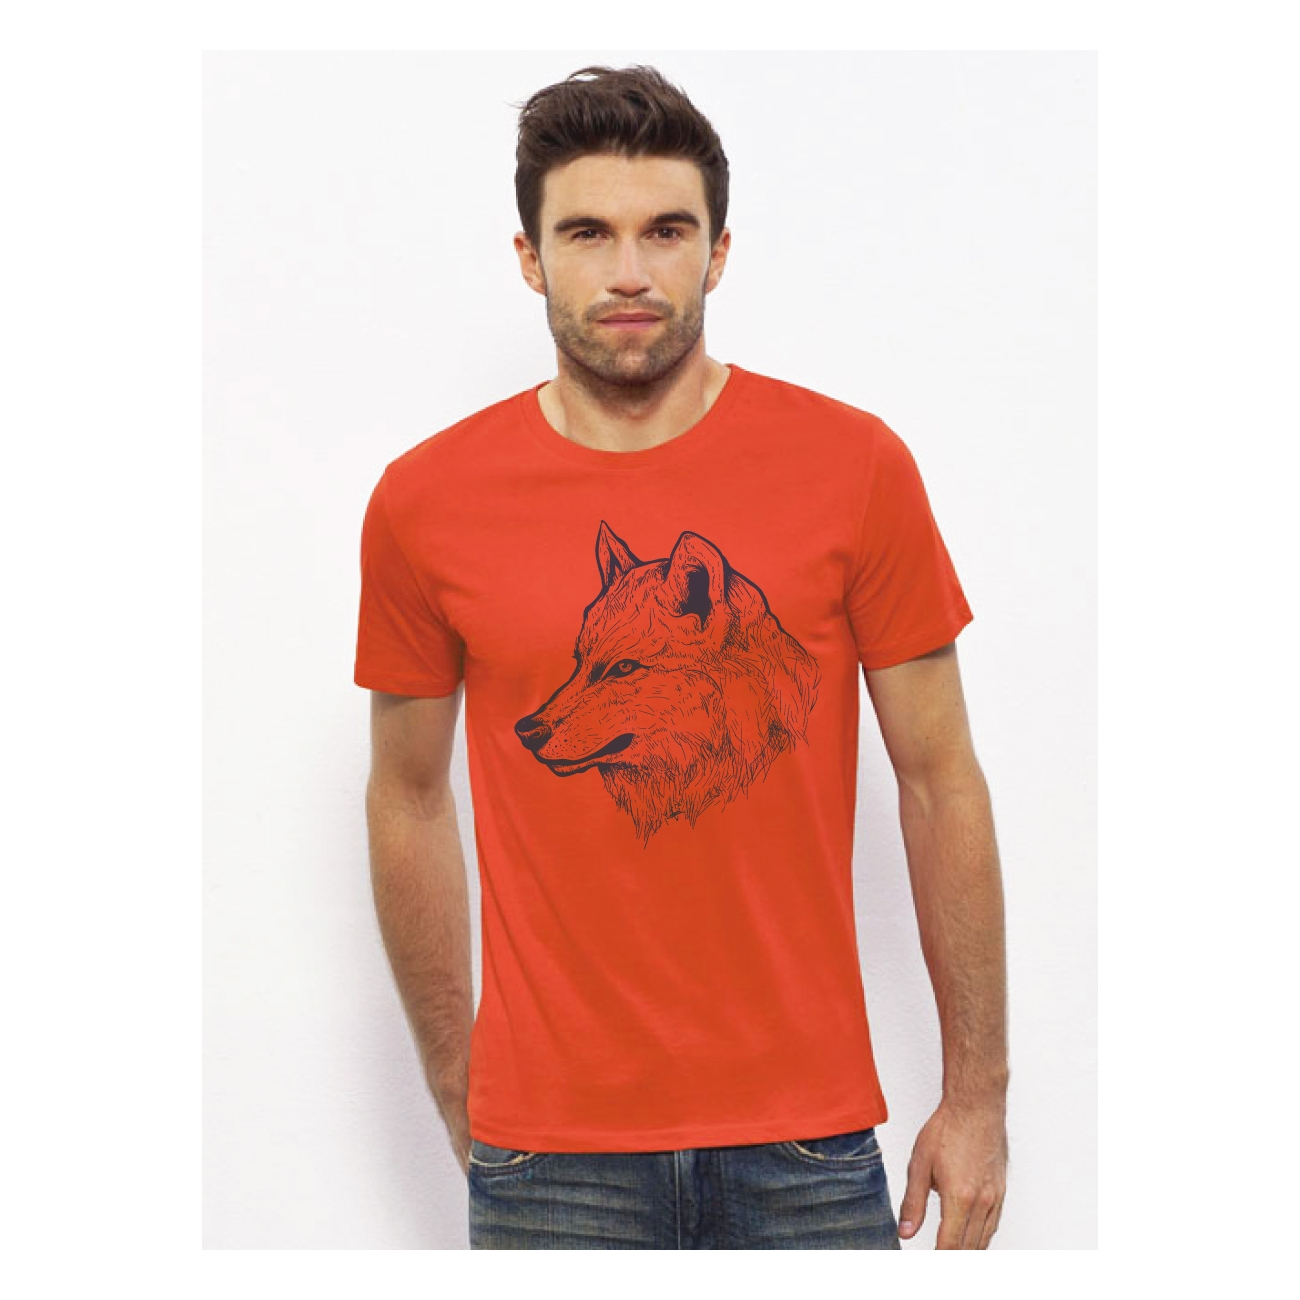 https://tee-shirt-bio.com/3683-thickbox_default/tee-shirt-homme-100-coton-bio-doux-equitable-orange-imprime-loup-leads-189.jpg